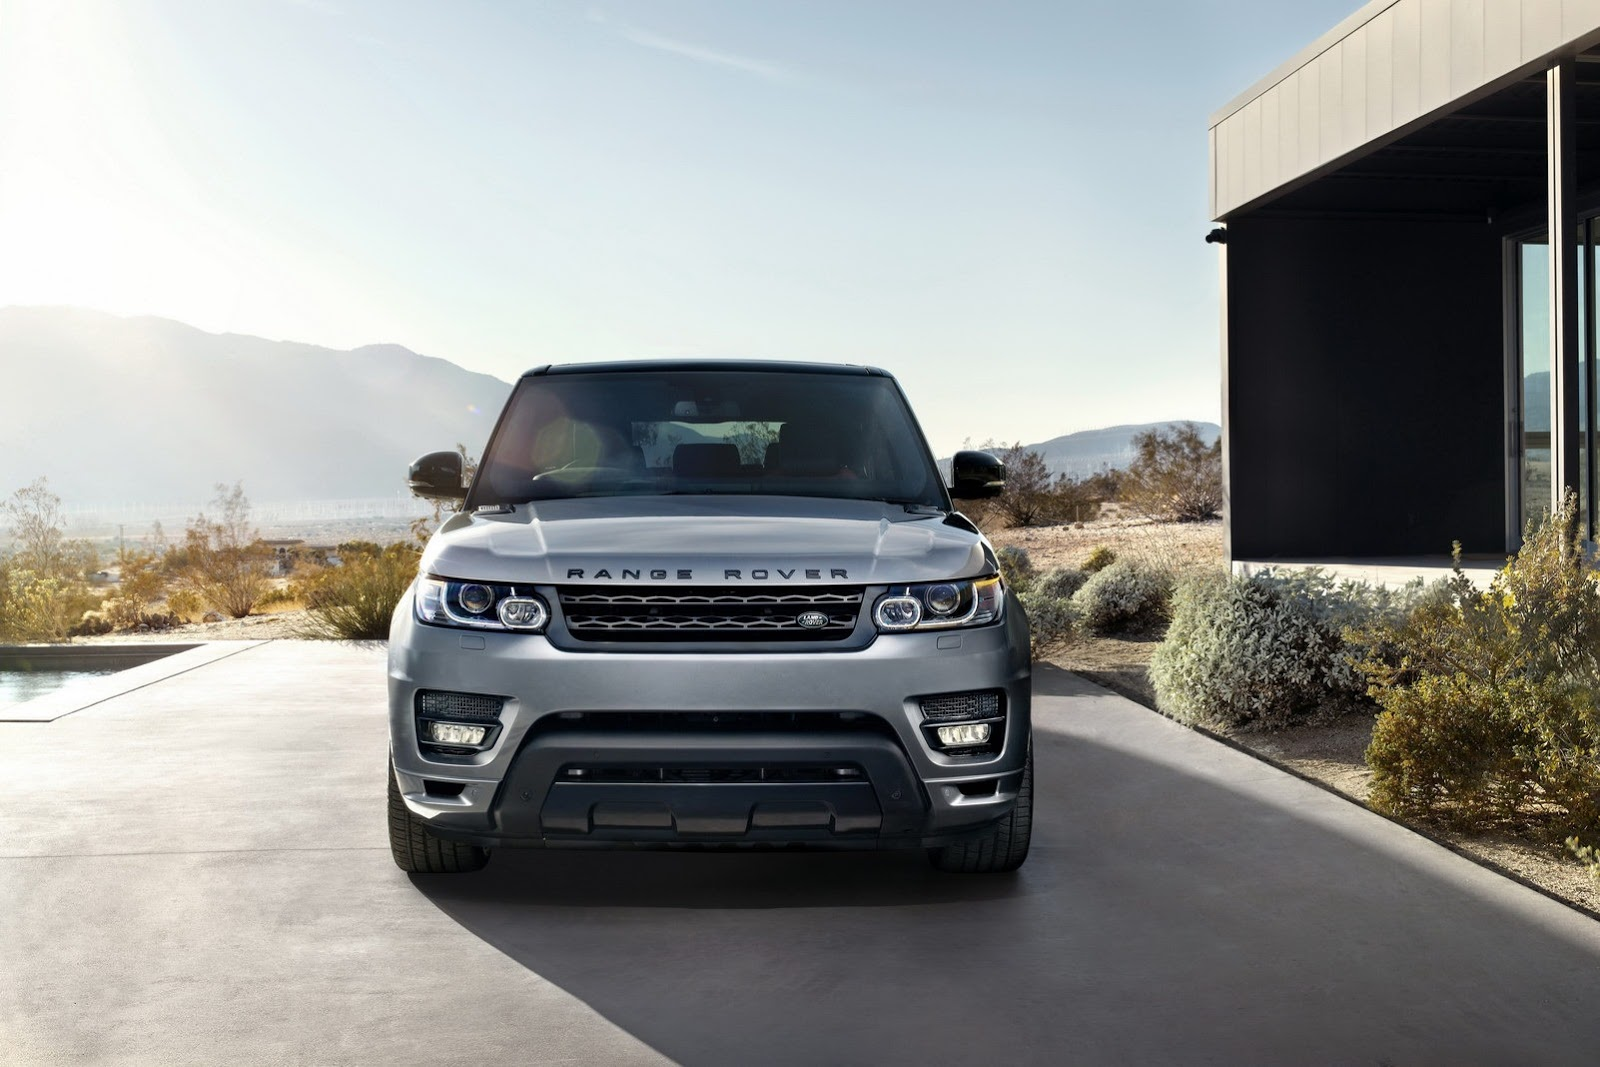 Mansory Range Rover Sport  Pictures and Wallpapers 1600x1067